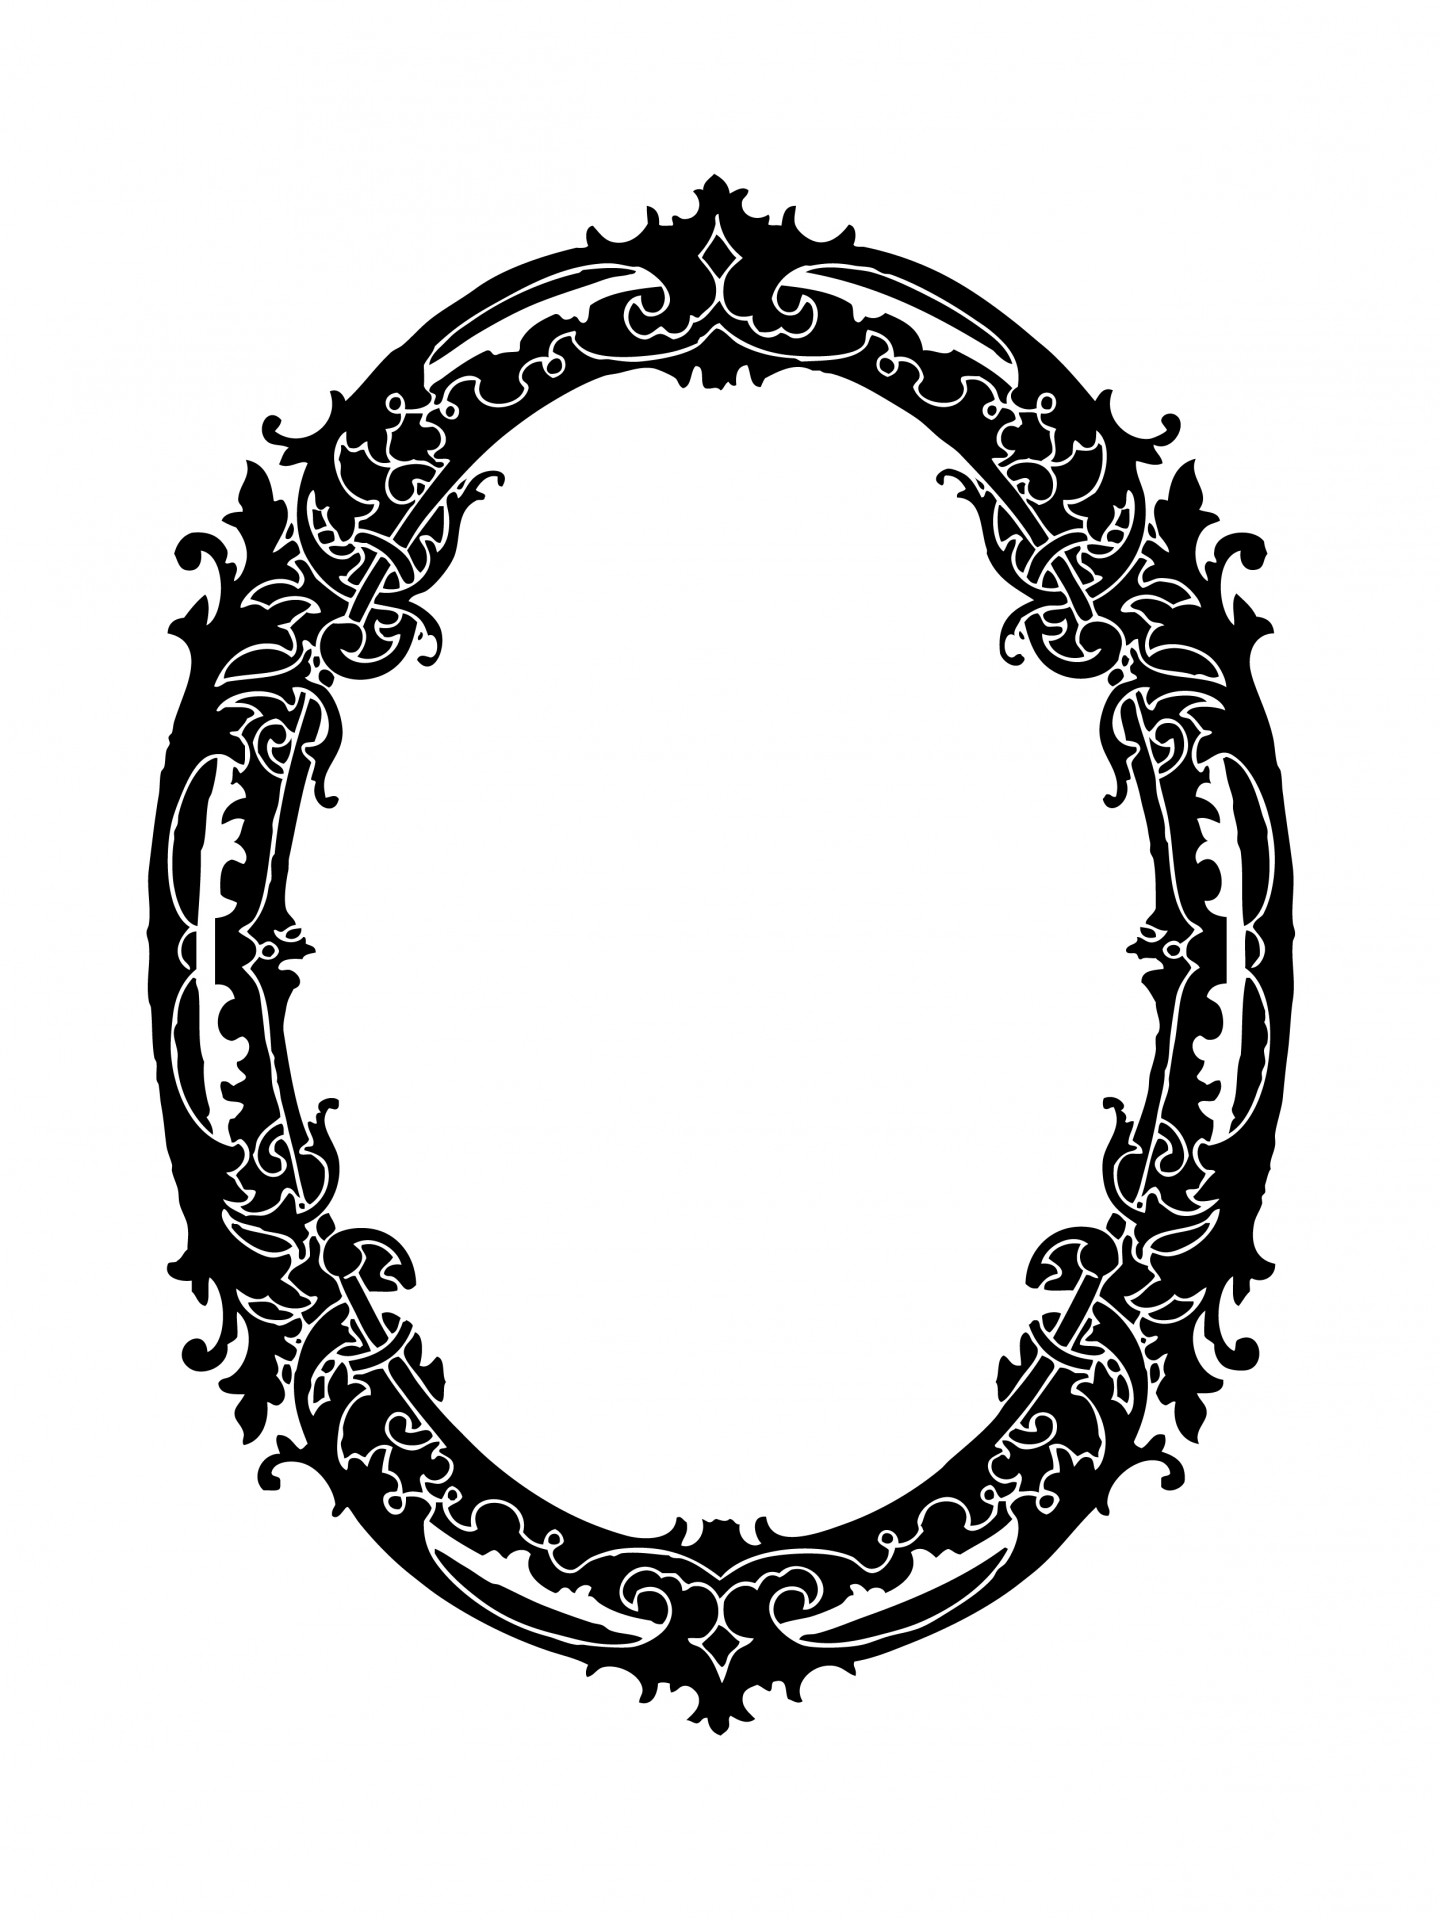 Oval Frame Decorative Clipart Free Stock Photo.